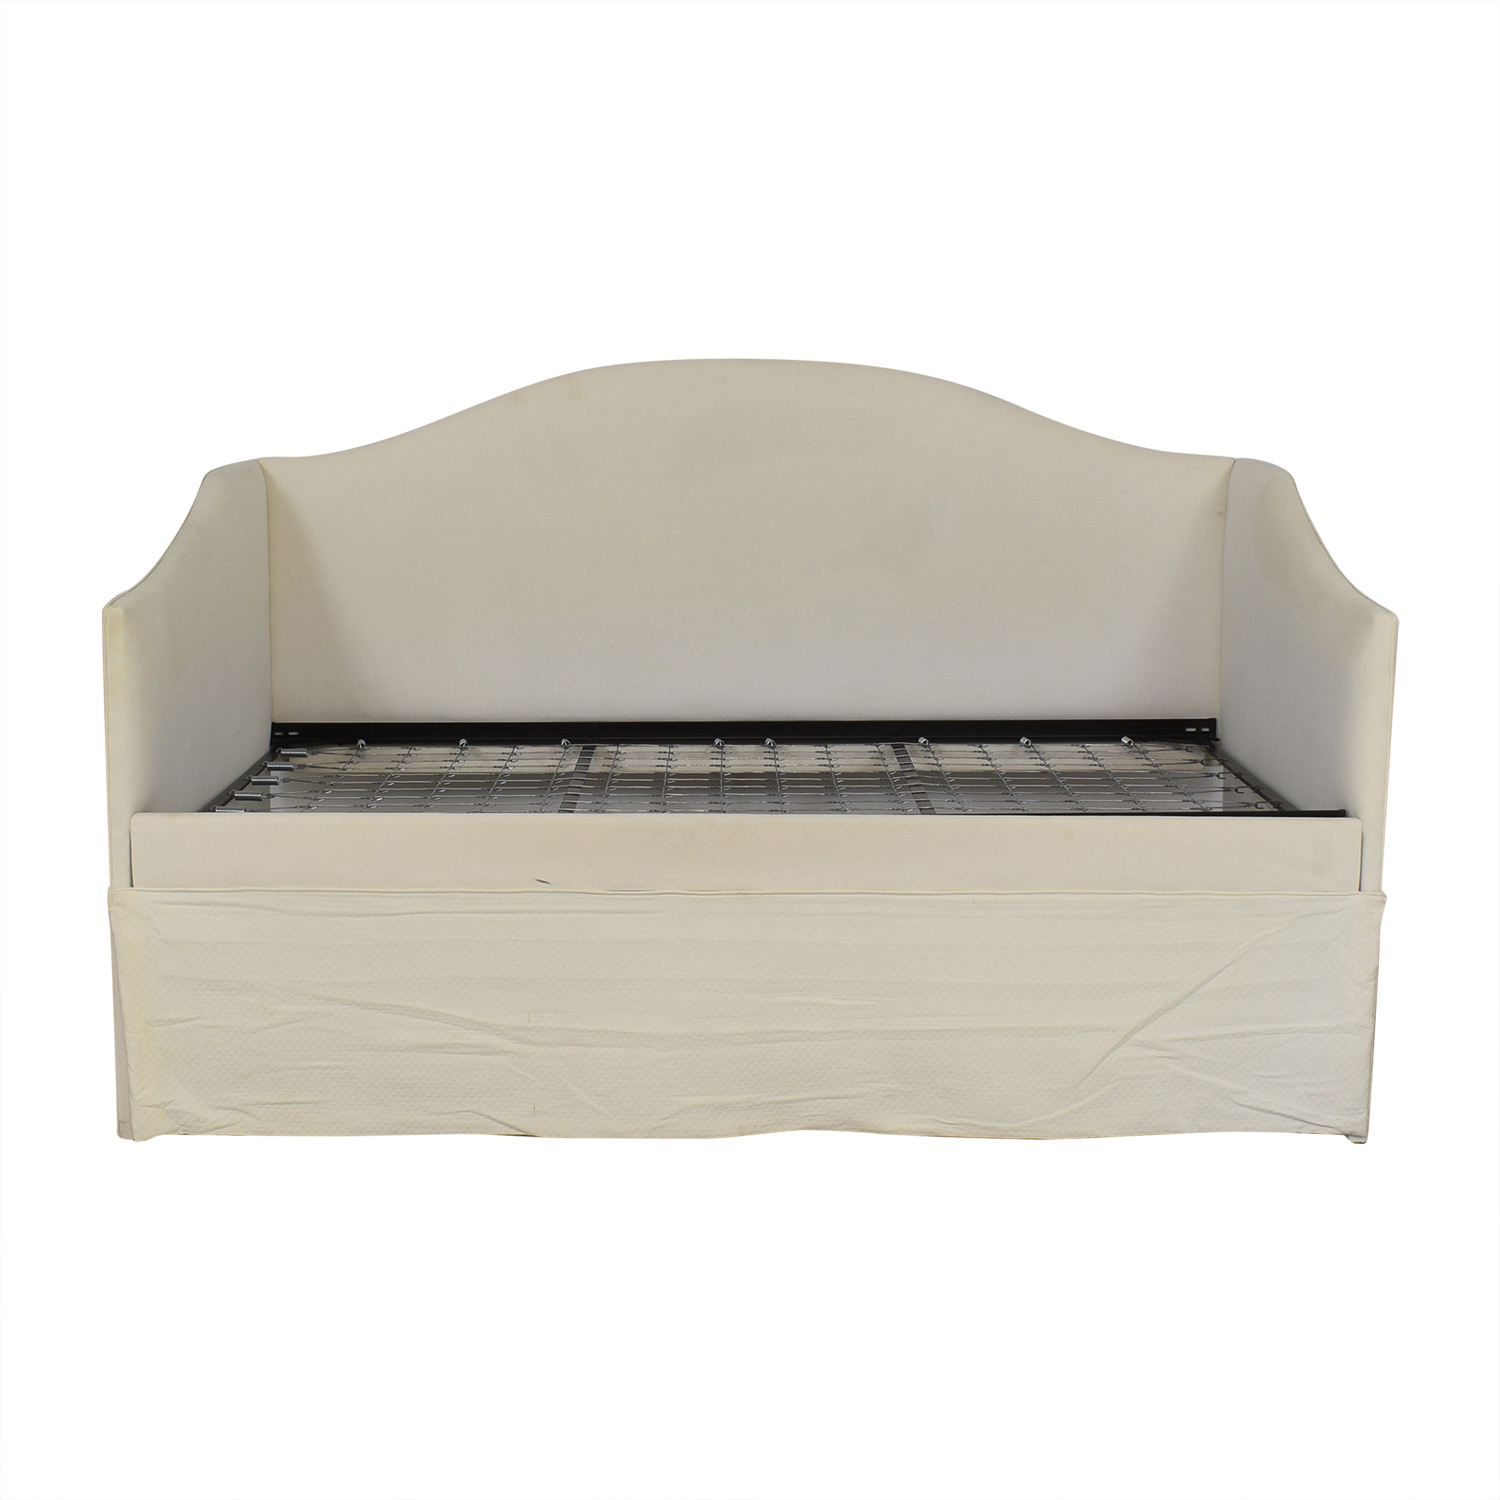 Ballard Designs Ballard Designs Camden Daybed with Trundle pa